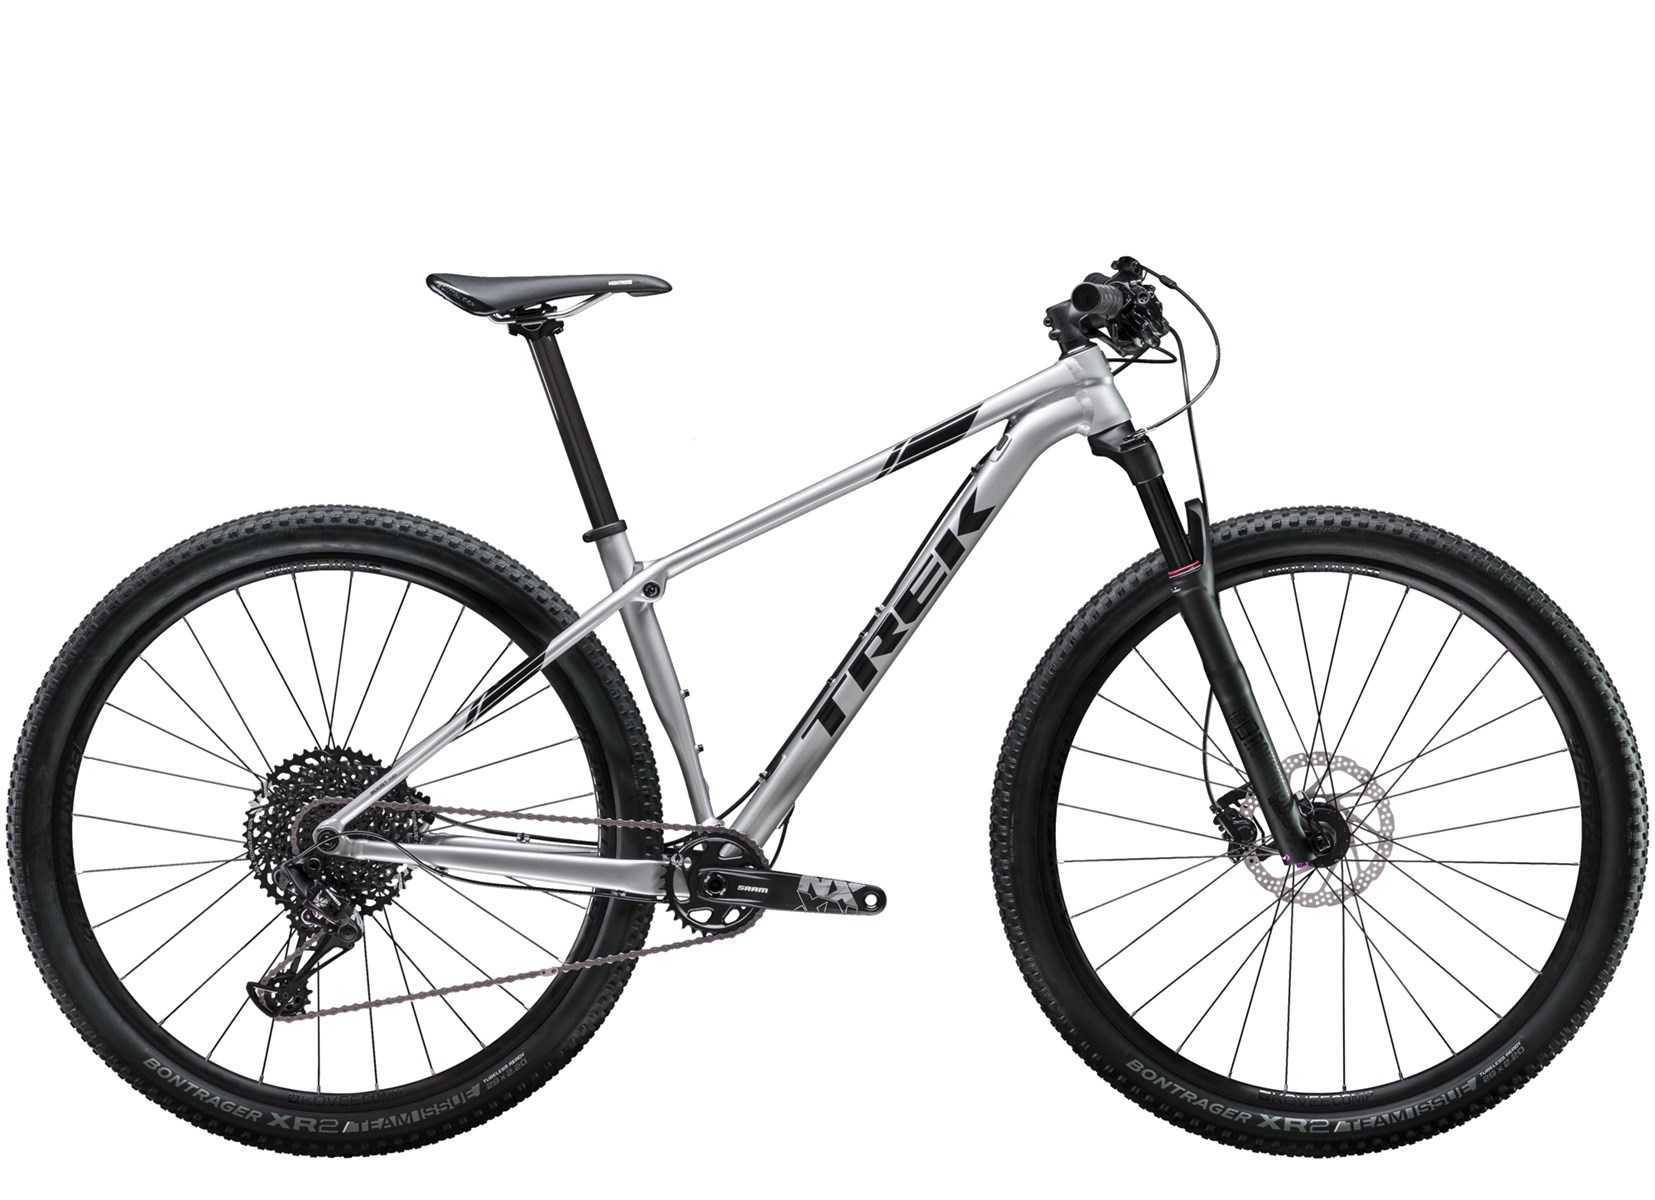 89d87bd1bdb 2019 Trek Procaliber 8 Mens Hardtail Mountain Bike in Silver £1,700.00